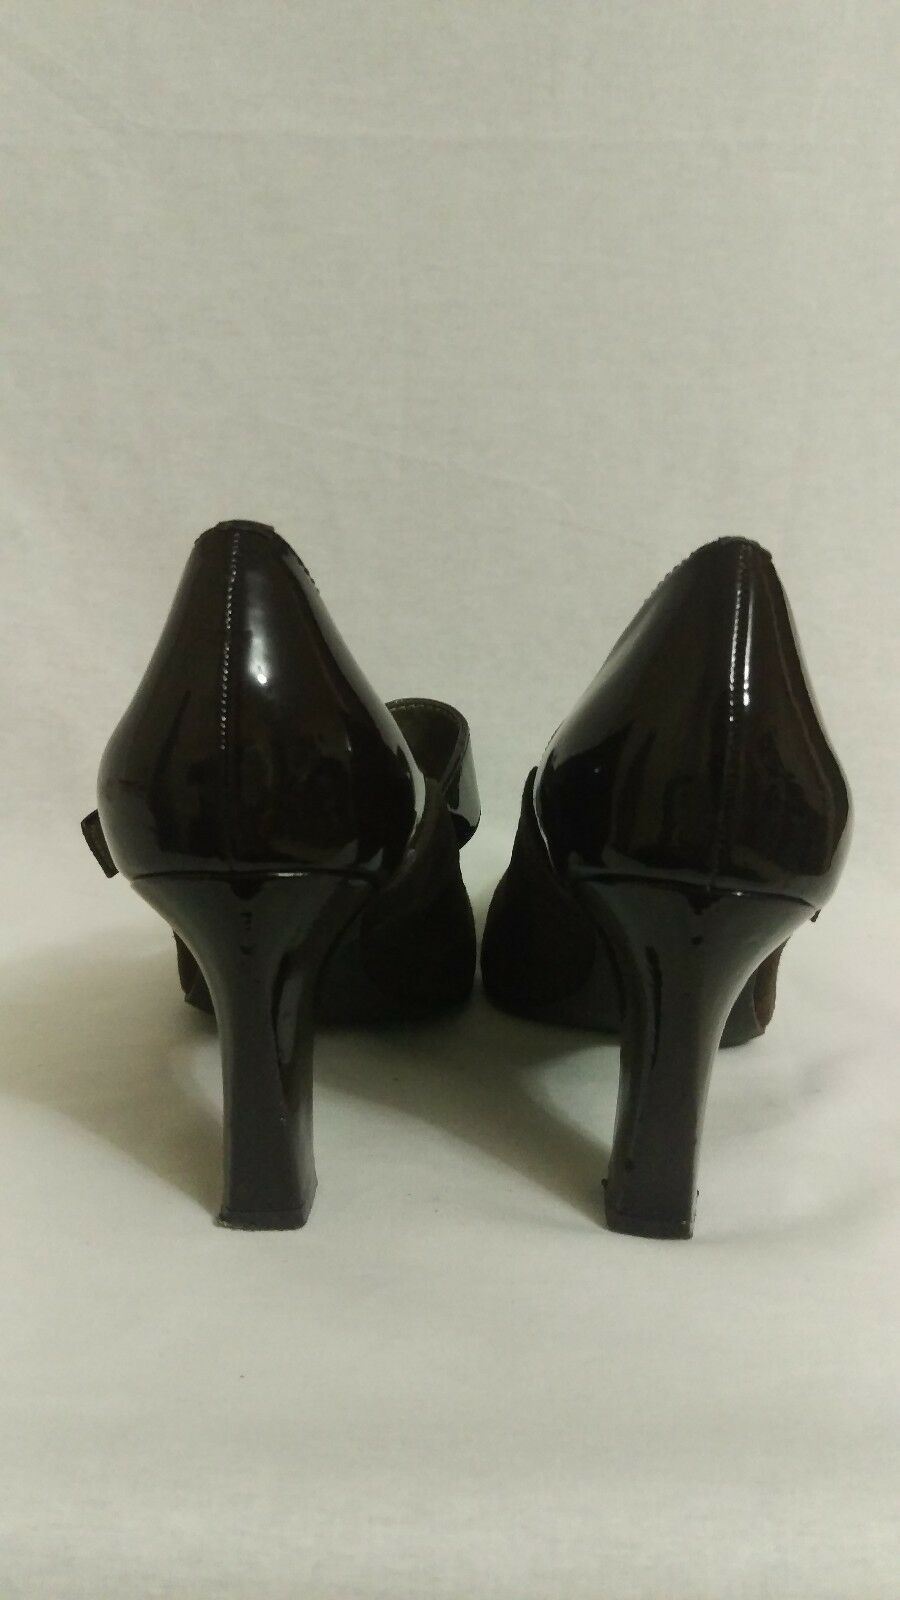 Franco Sarto Women's Brown Shoes size 6M heels image 2